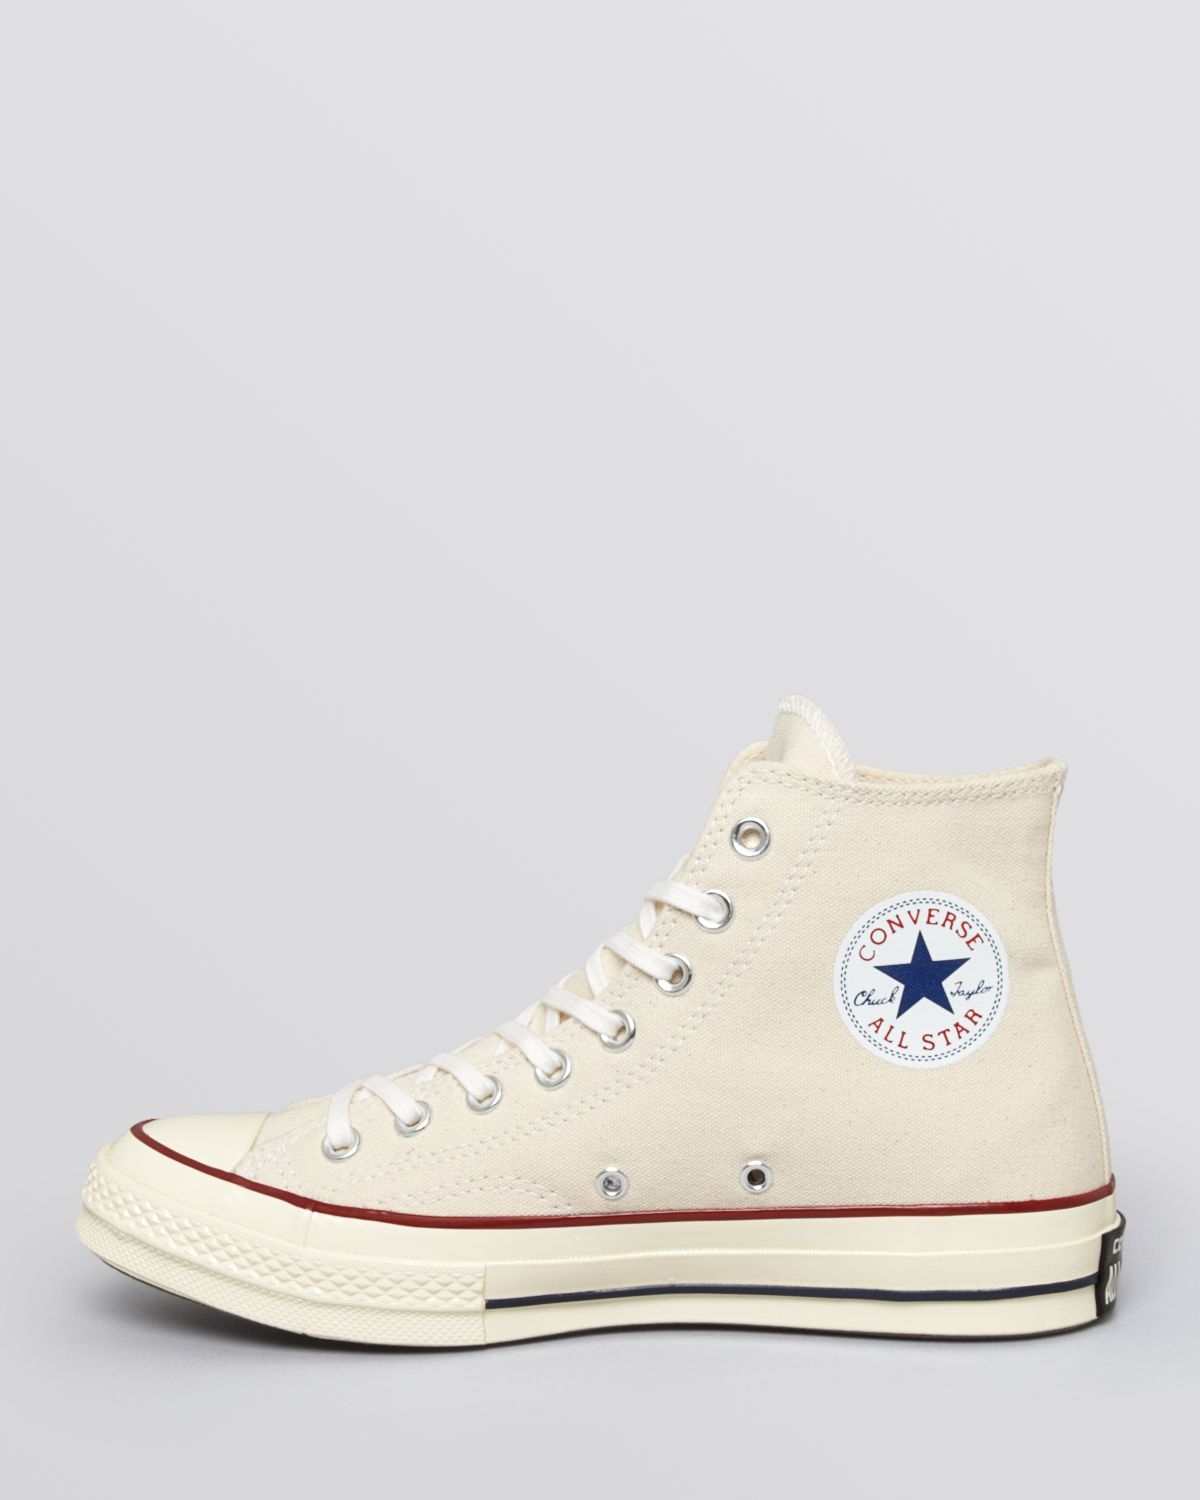 High Chuck Taylor 1970s All Star Bouclé Sneakers Converse baqjbiP